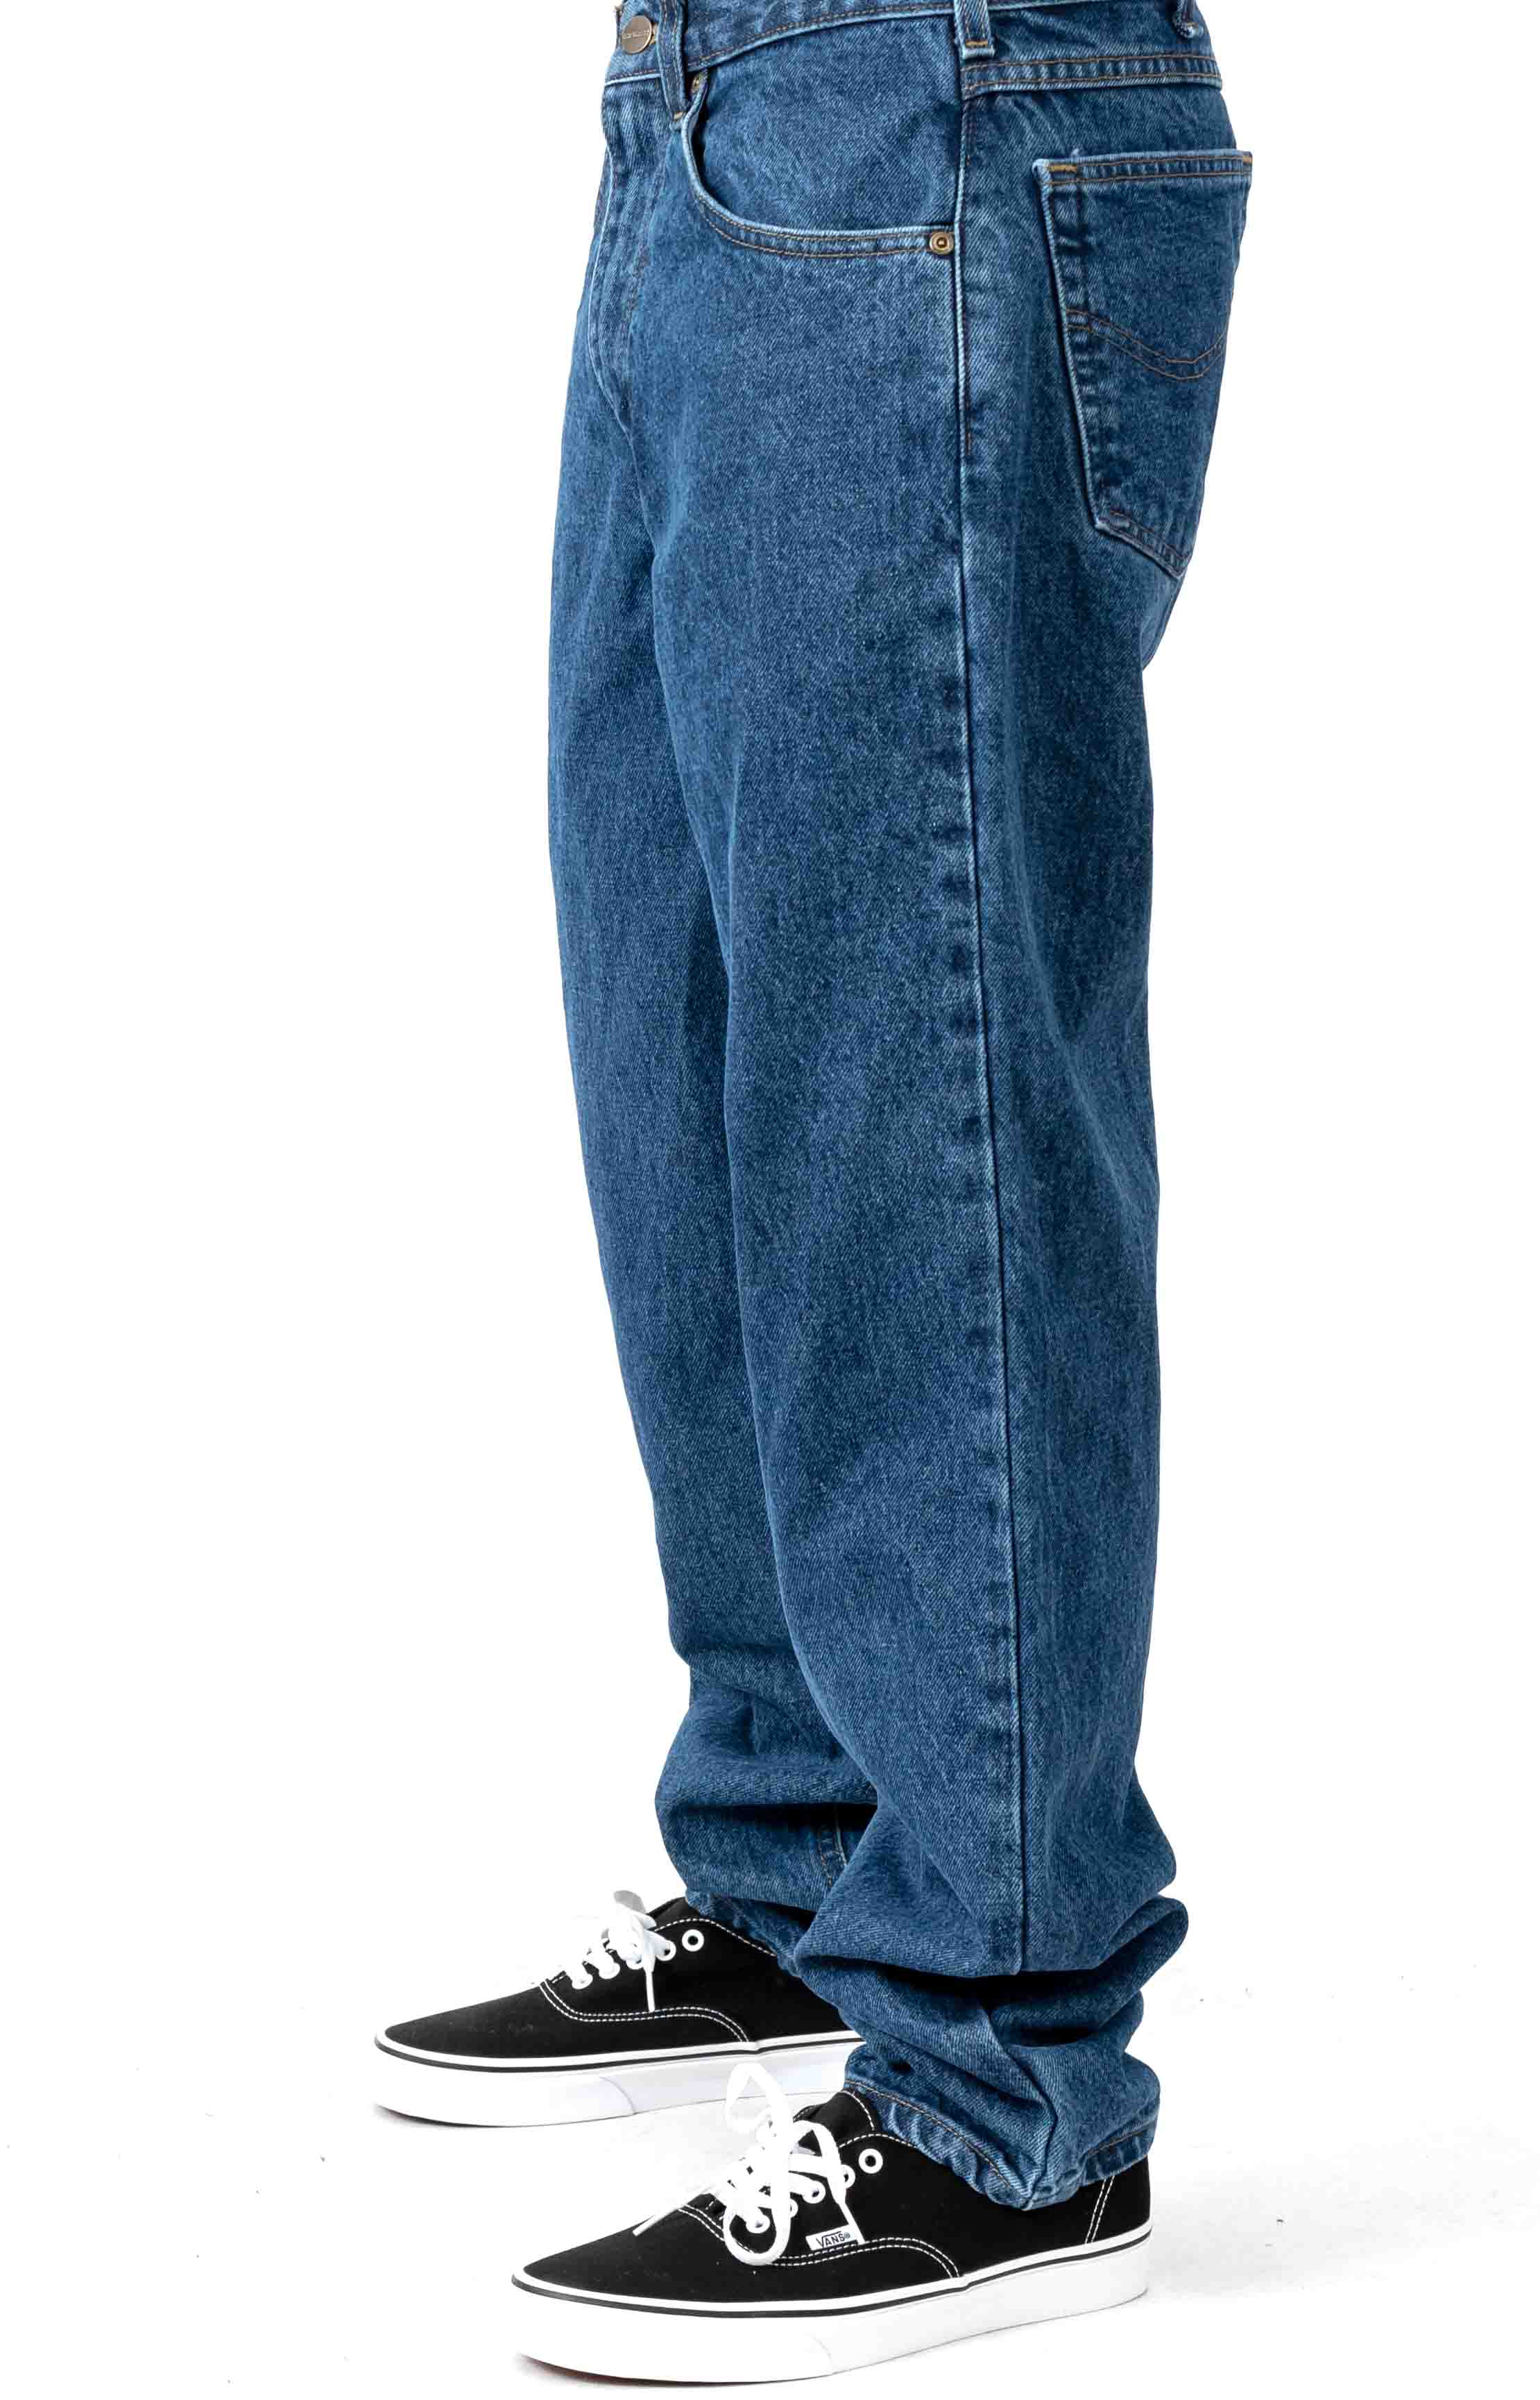 (B17) Relaxed Fit Tapered Leg Jeans - Darkstone 2